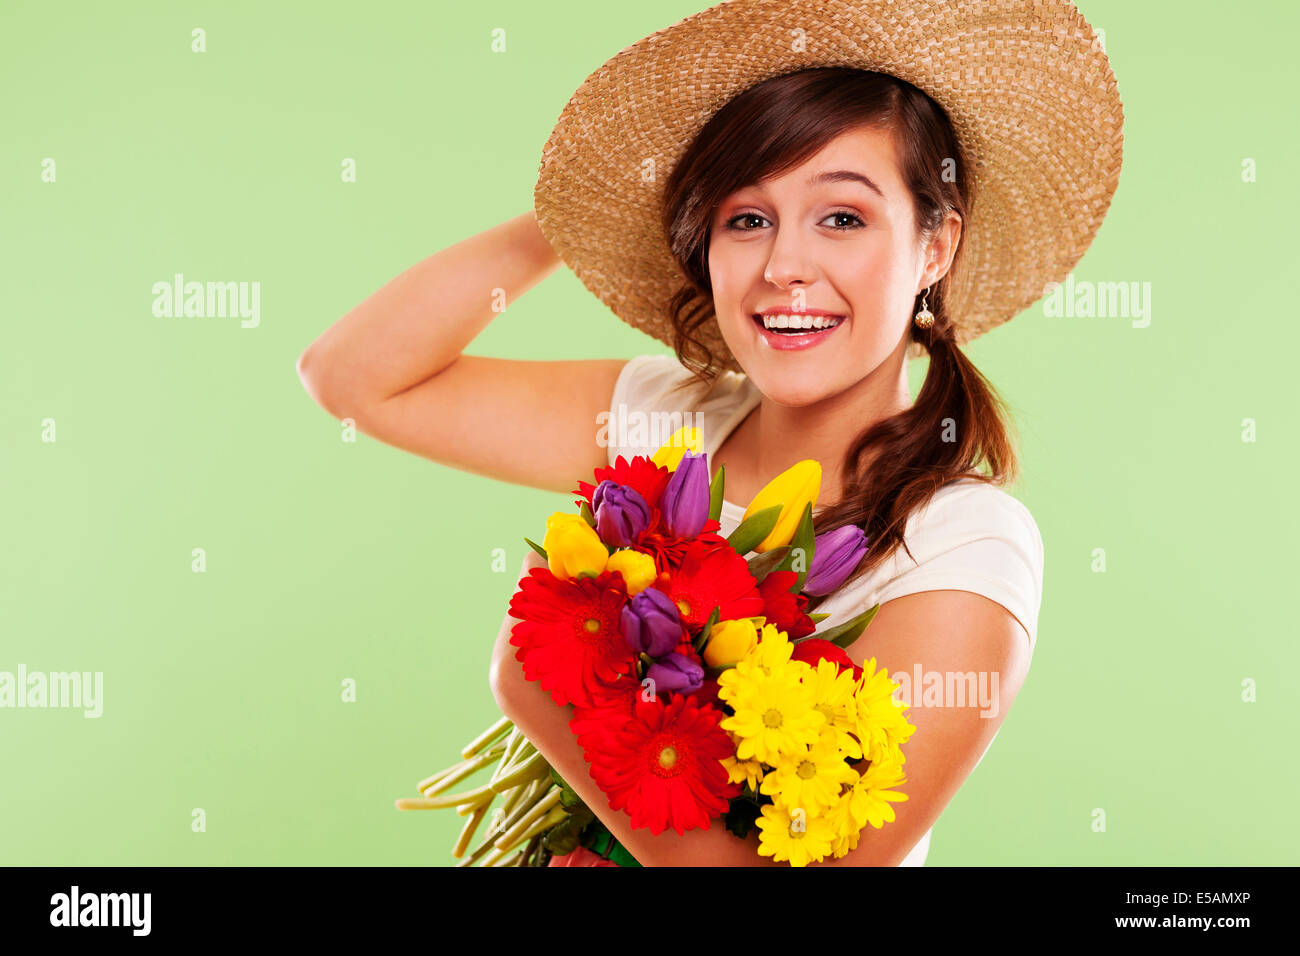 Smiling brunet woman with hat and spring flower, Debica, Poland - Stock Image